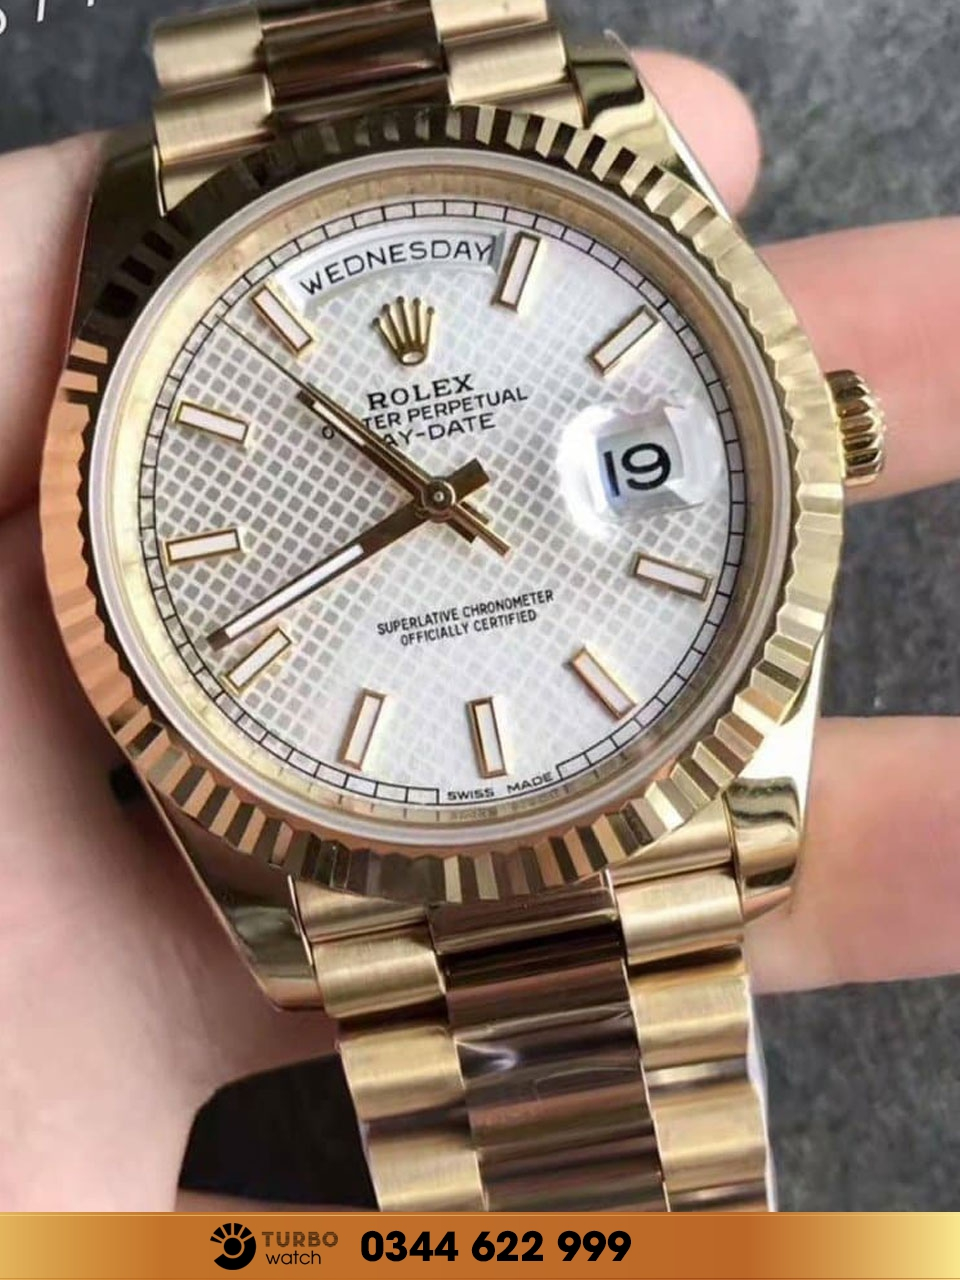 Rolex DAY-DATE 40 228239 gold fake -1 siêu cấp